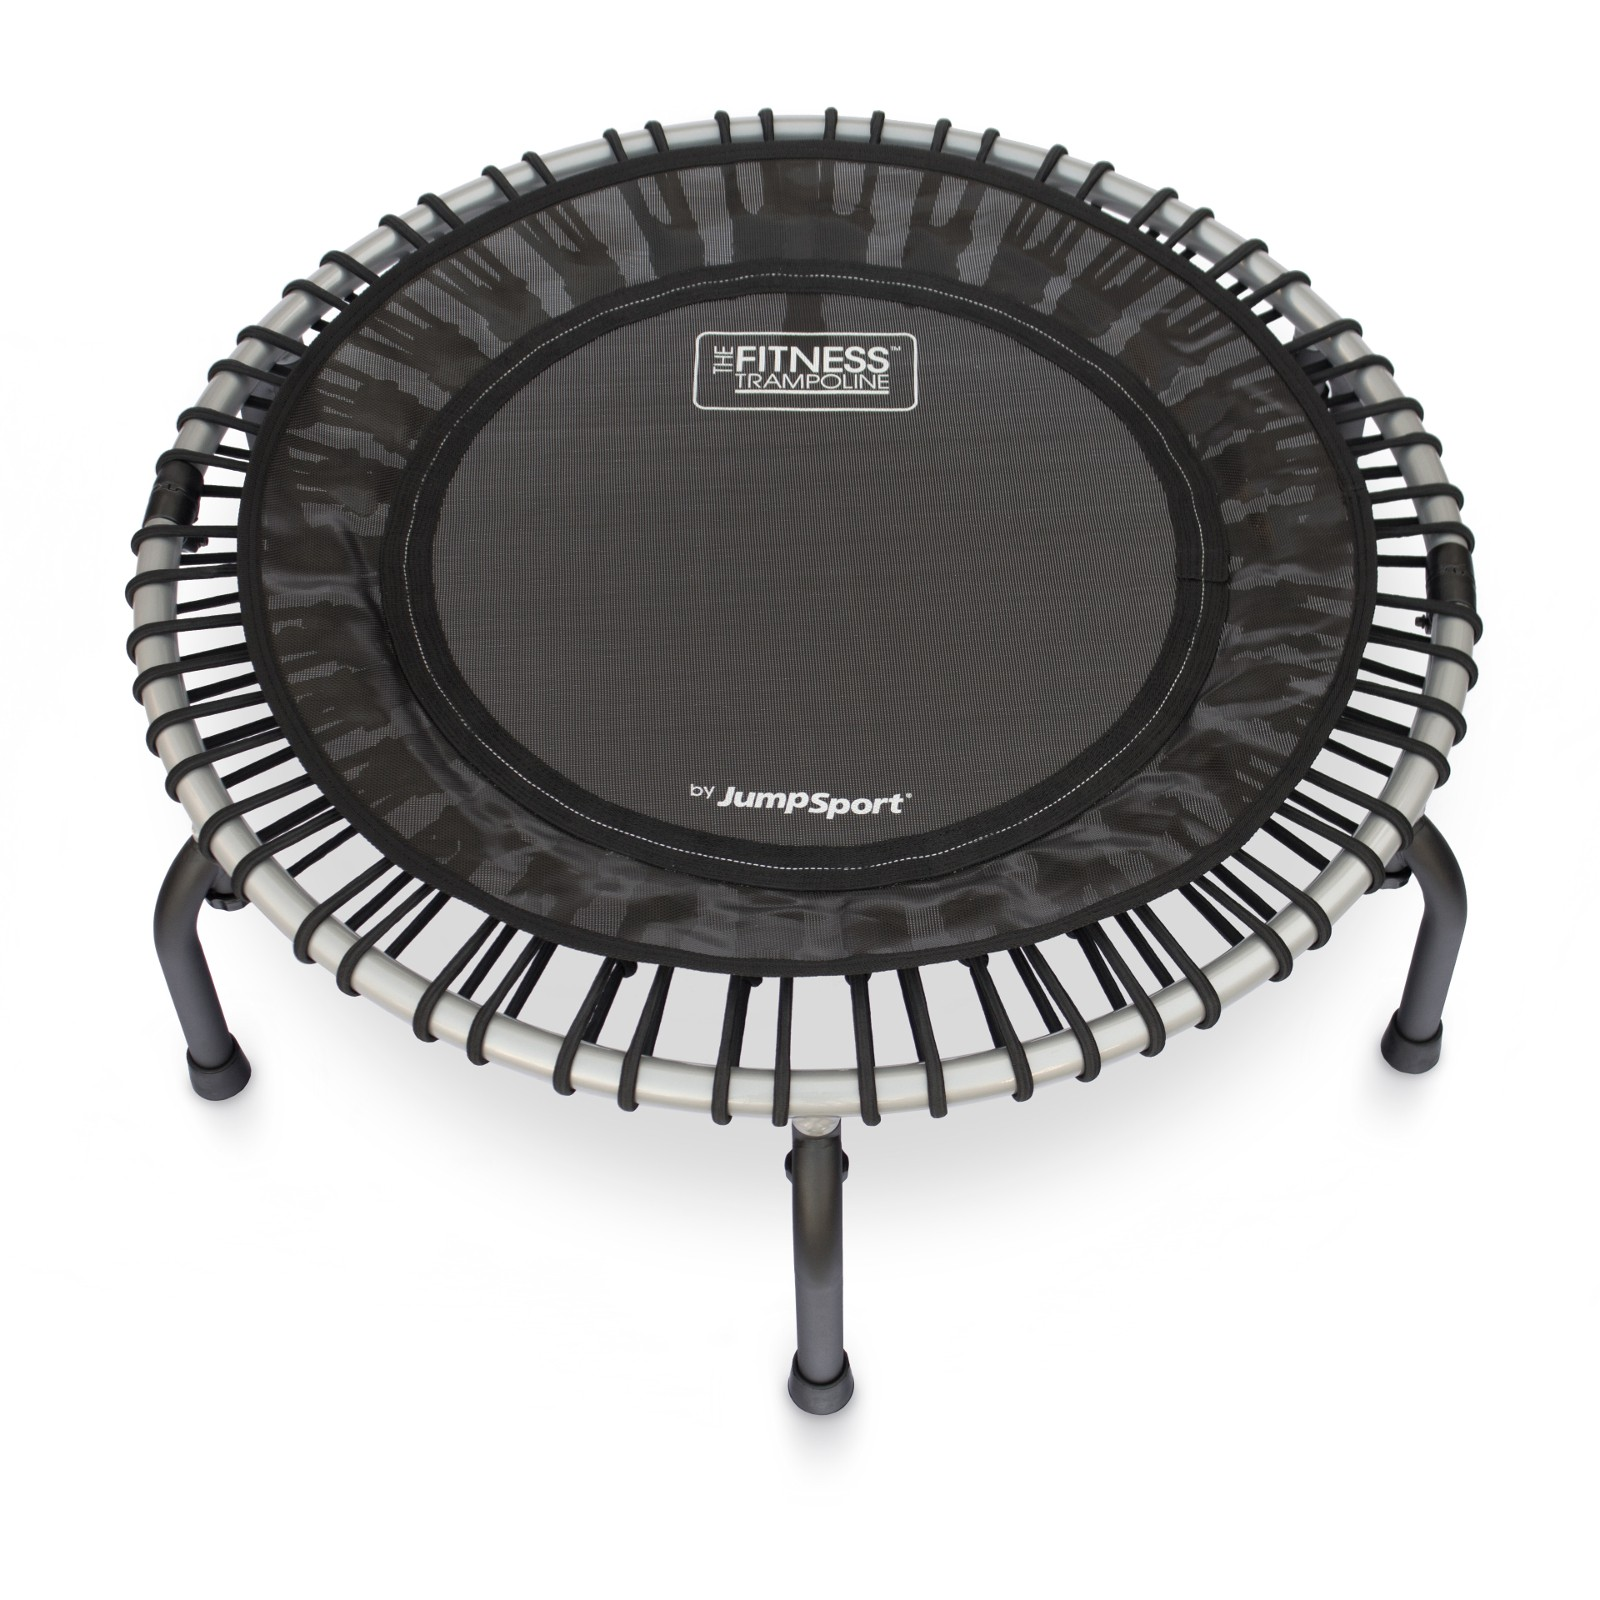 Jumpsport Fitness Trampoline Model 350 Buy With 182